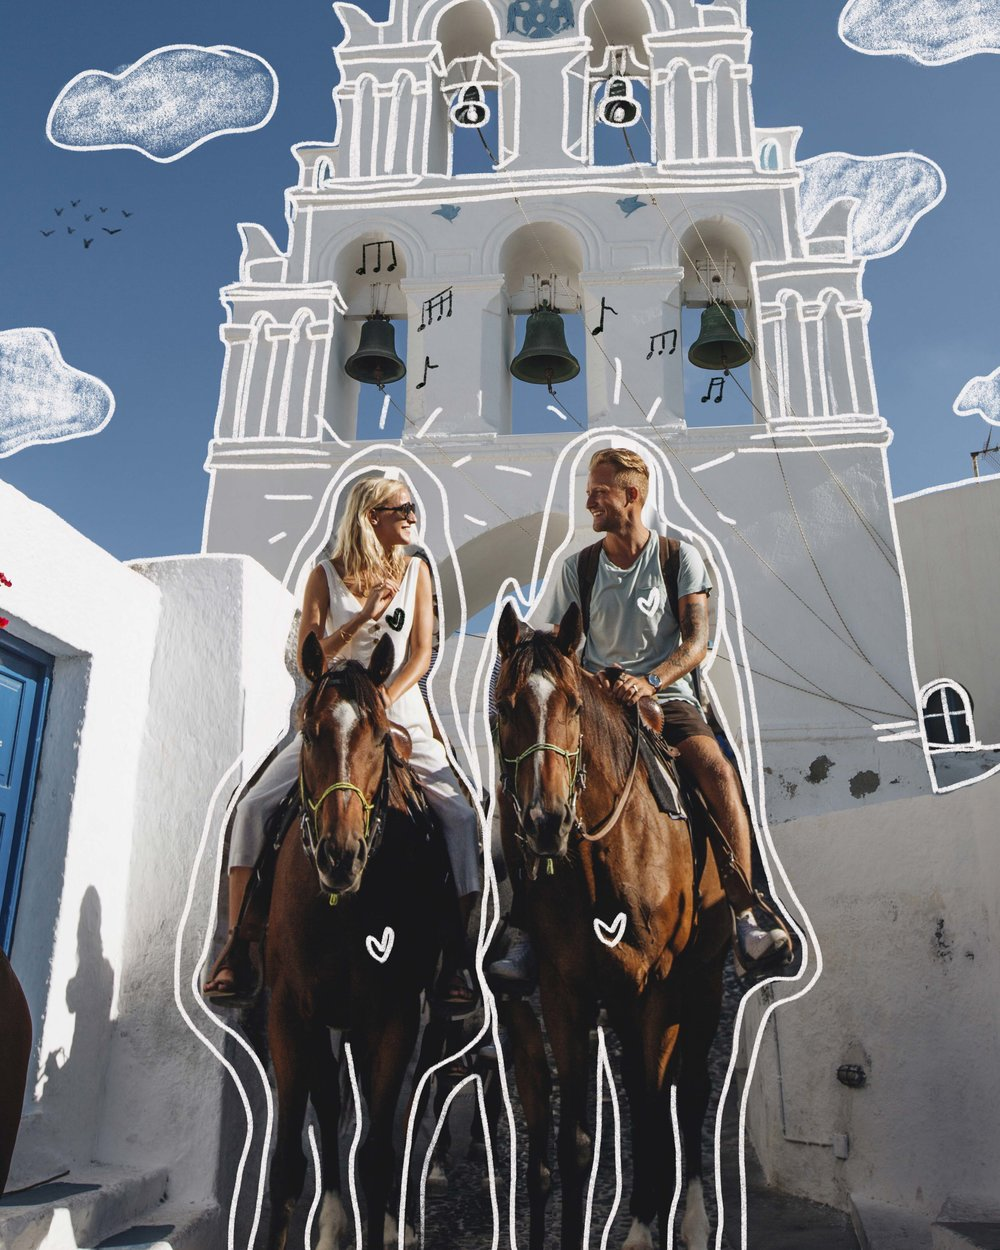 horseback riding in Santorini, Greece